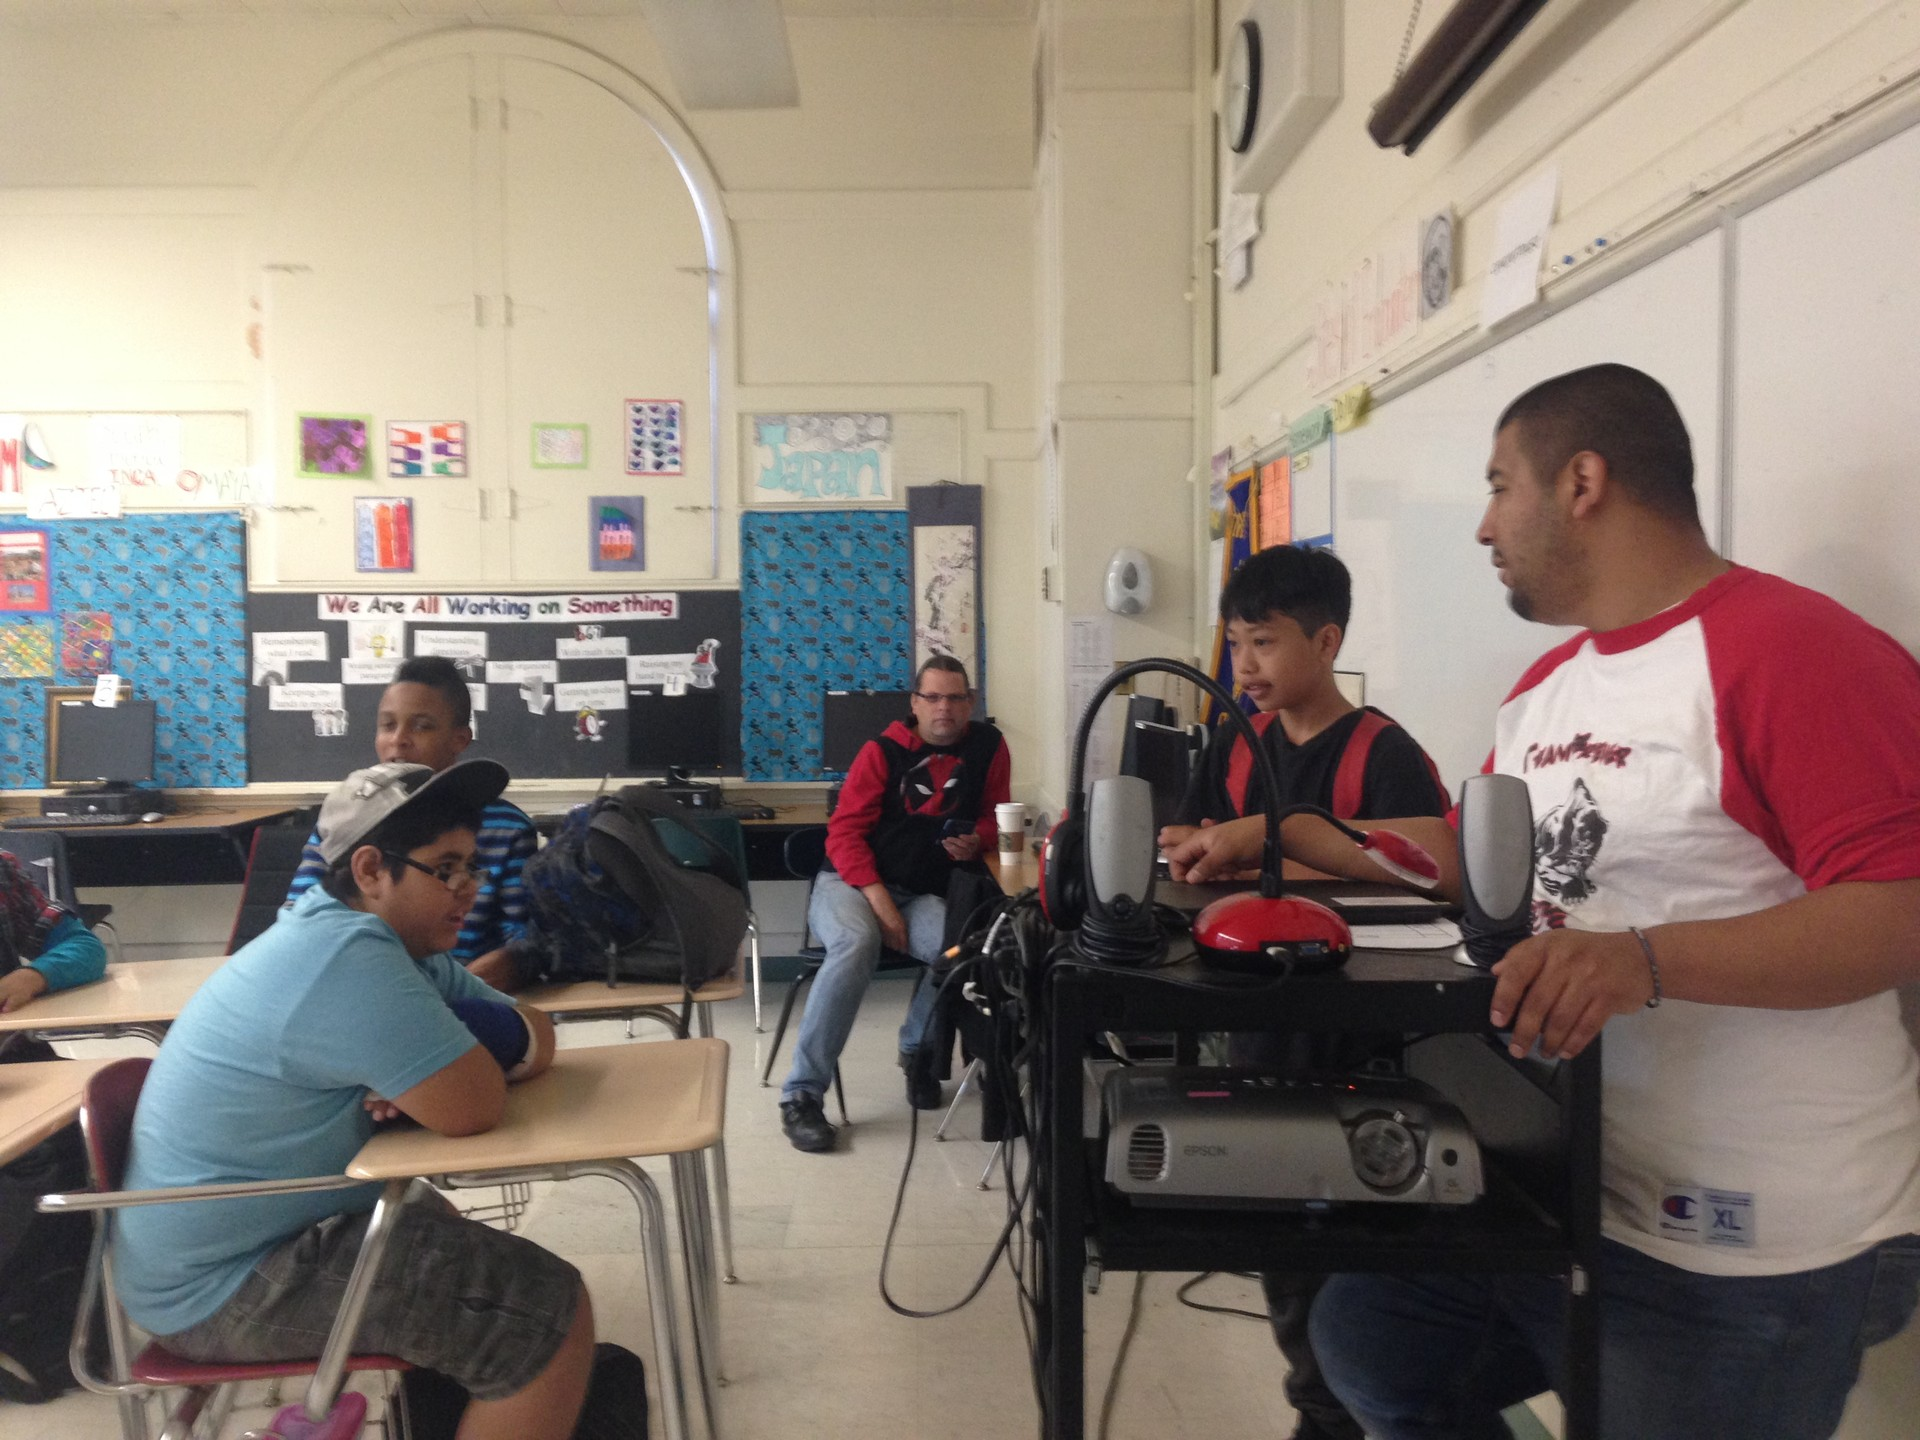 Special Education teacher Ismael Amendariz speaks to some of his students at Edna Brewer Middle School on May 20, 2016.